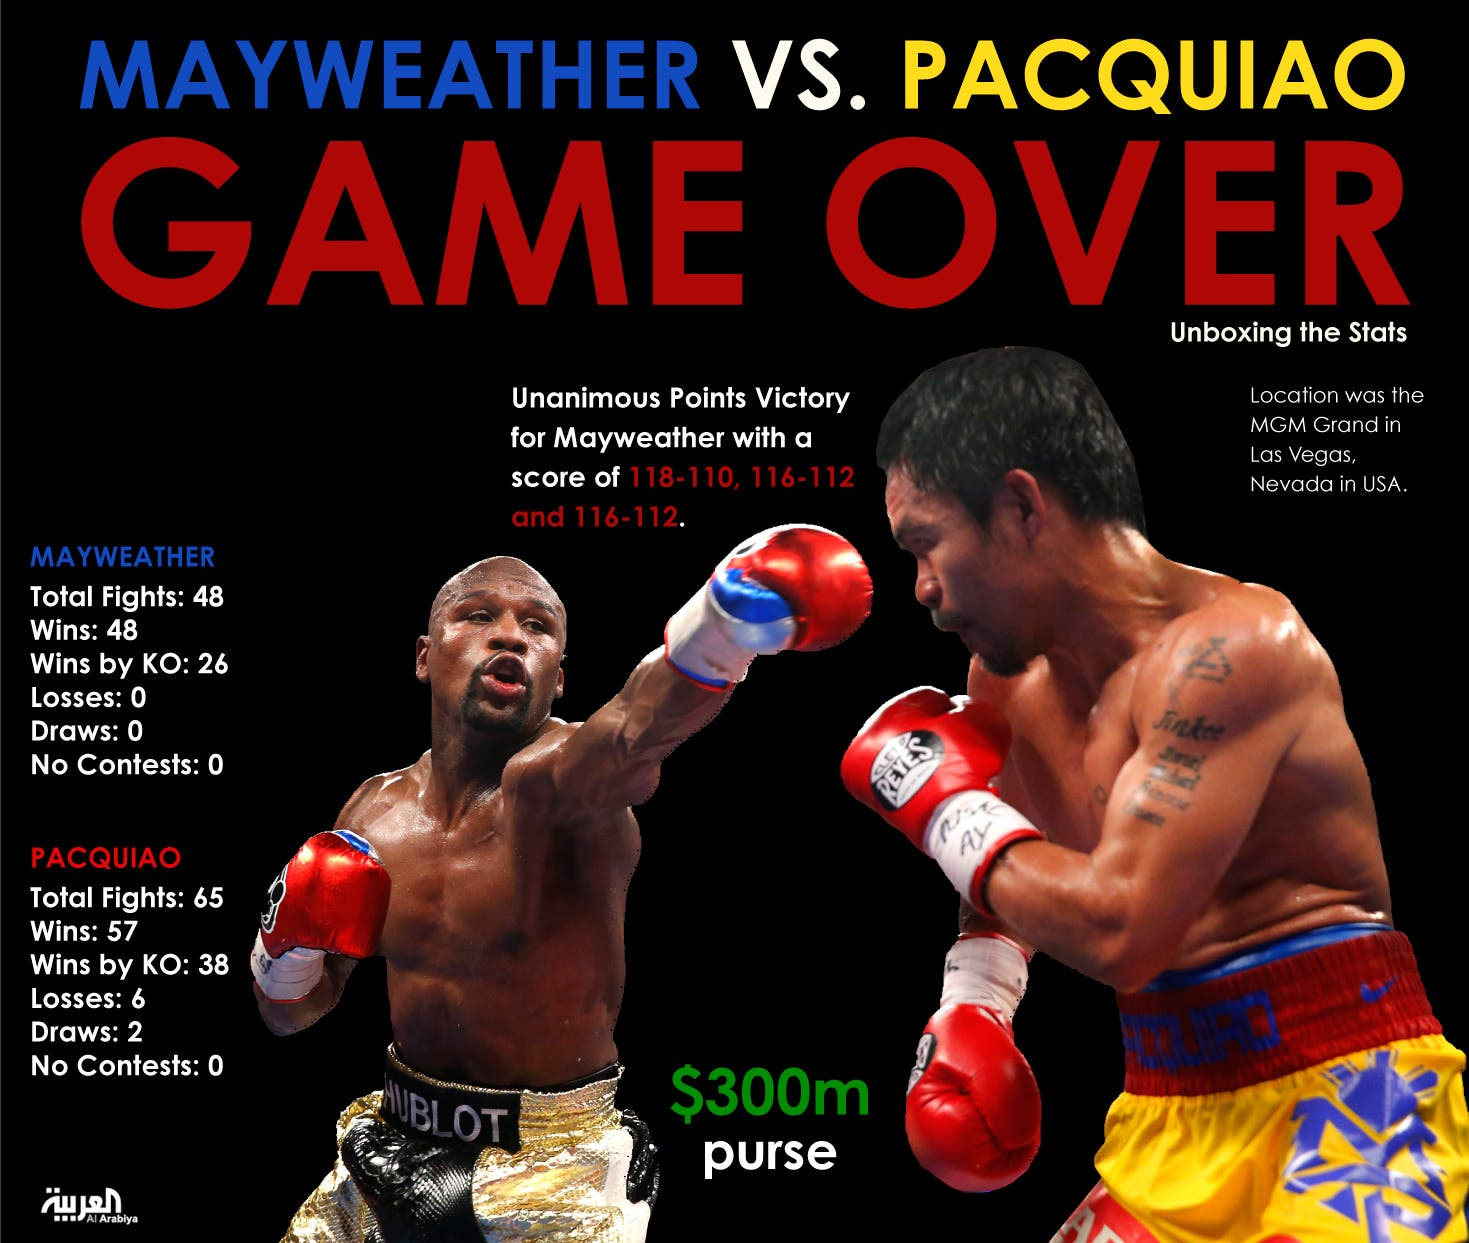 Infographic: Mayweather vs. Pacquiao: Game Over